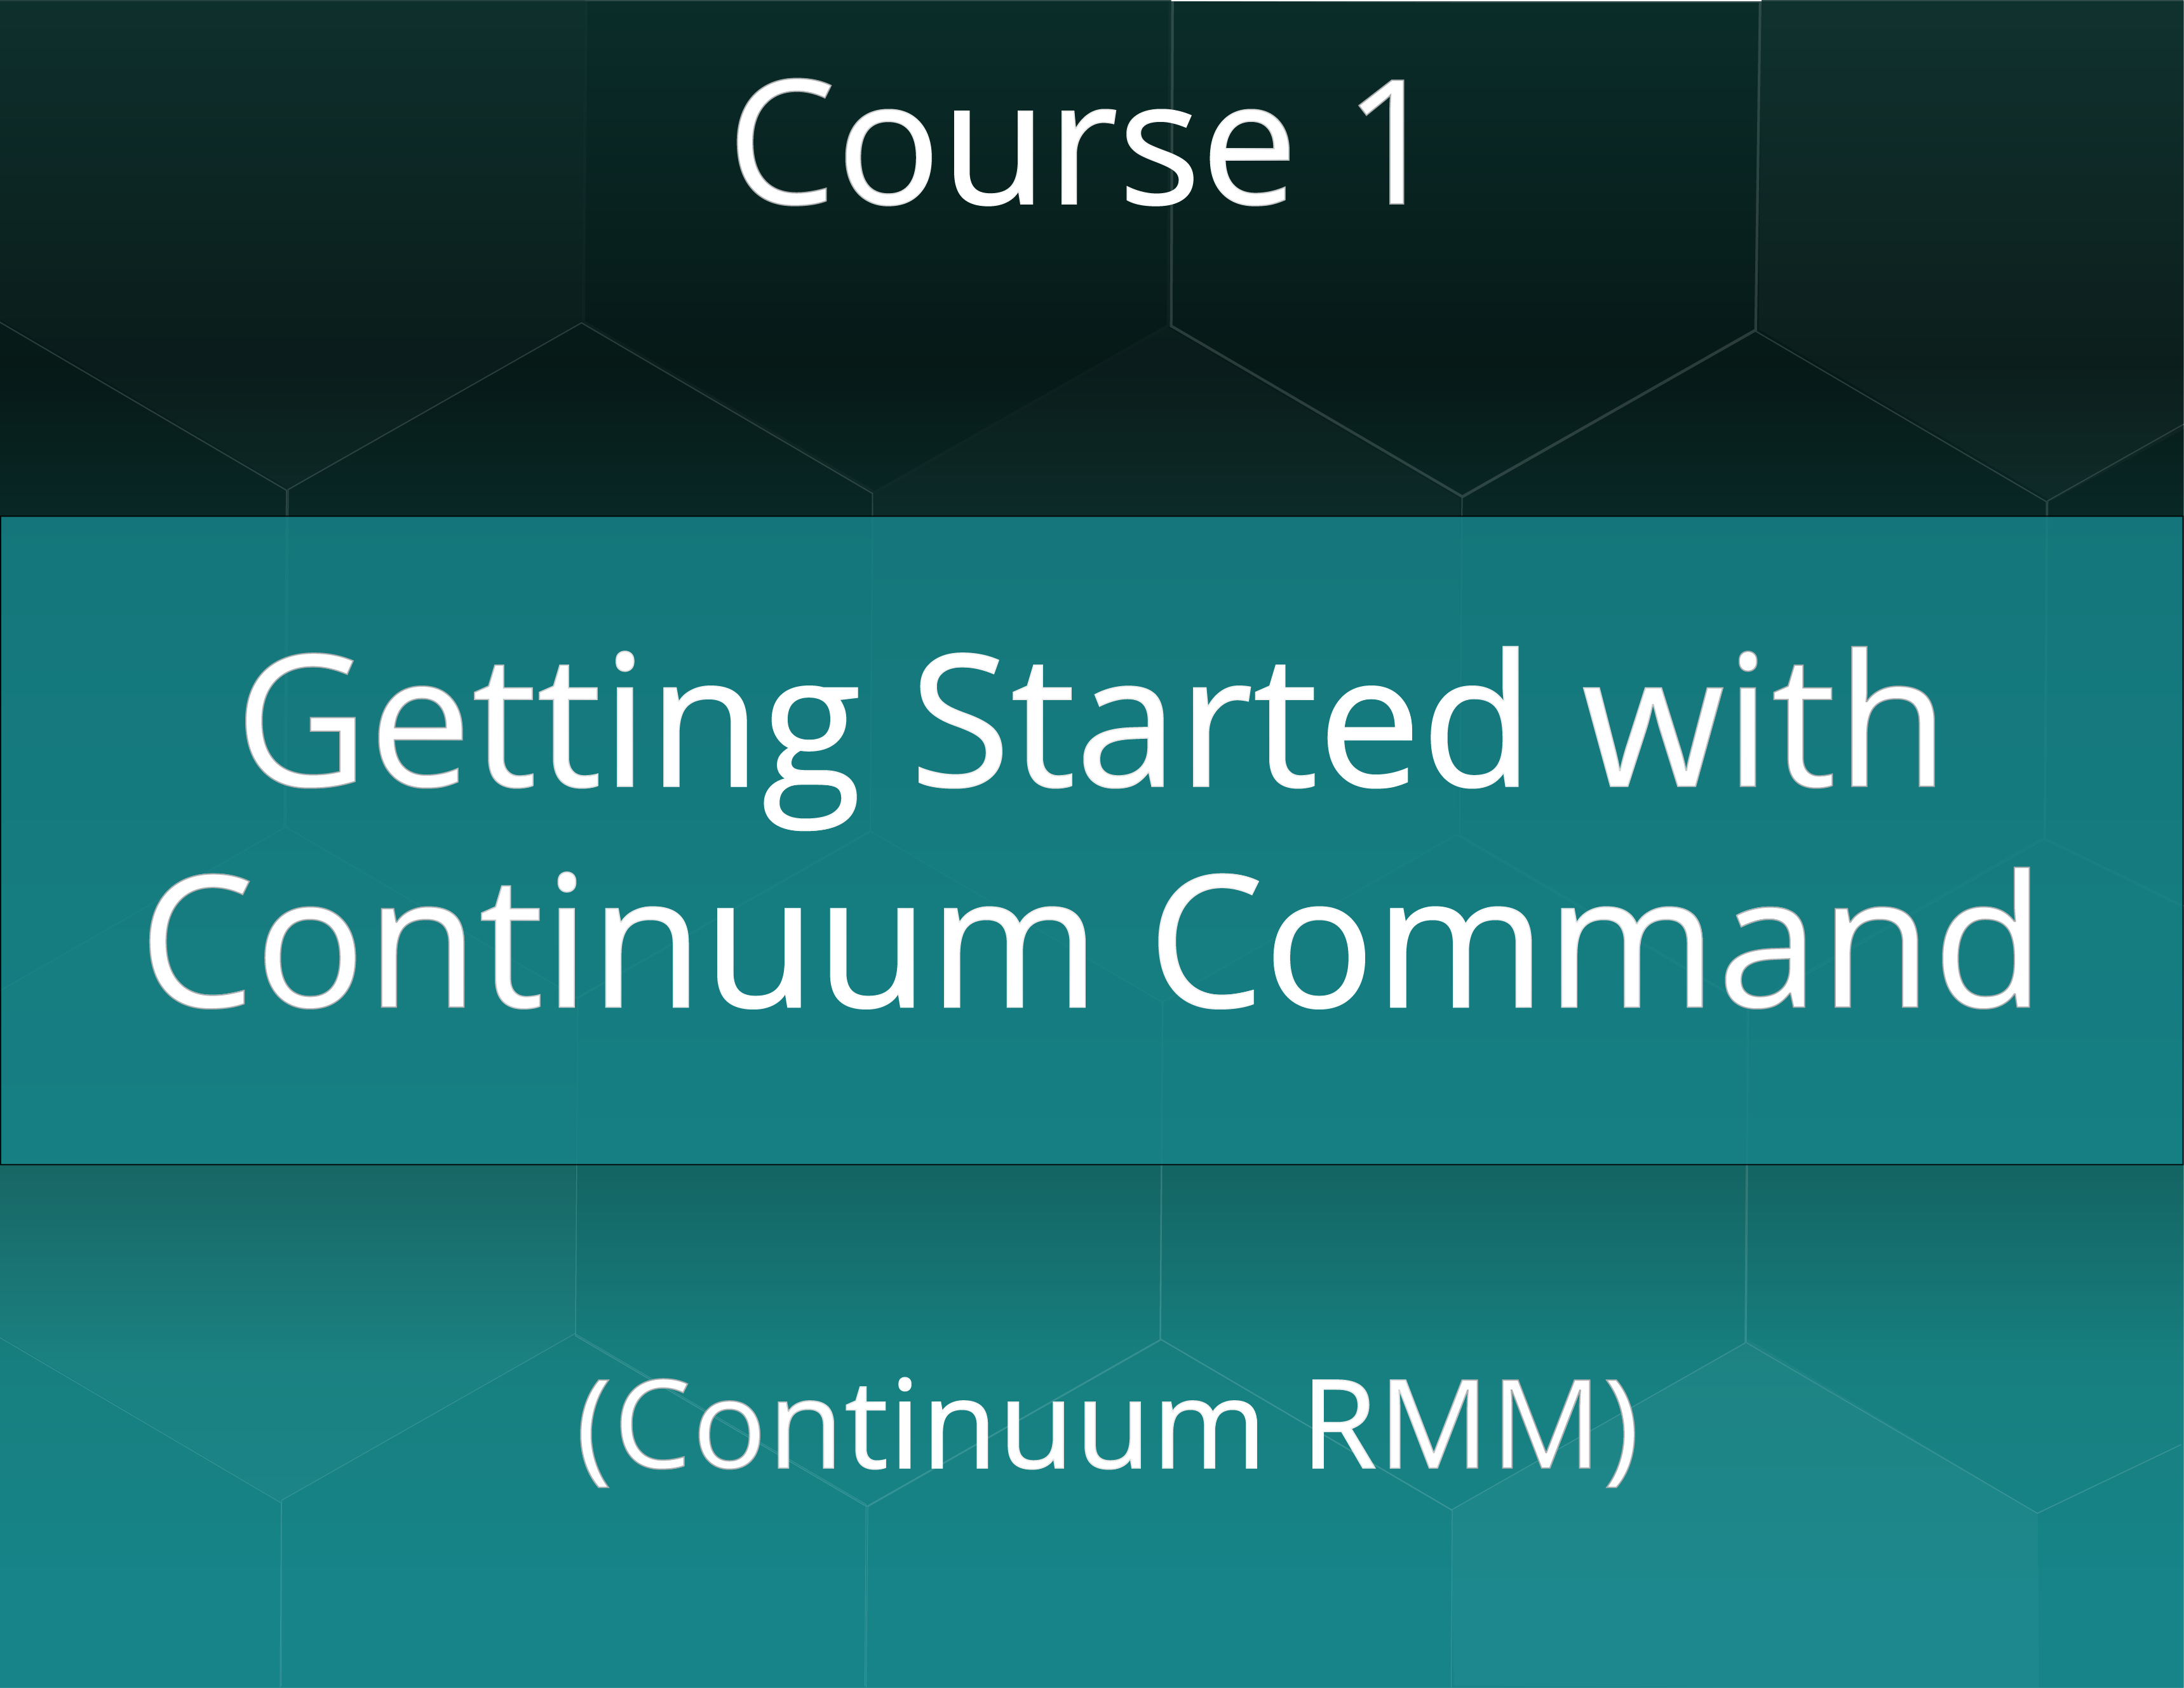 Getting Started with Continuum Command